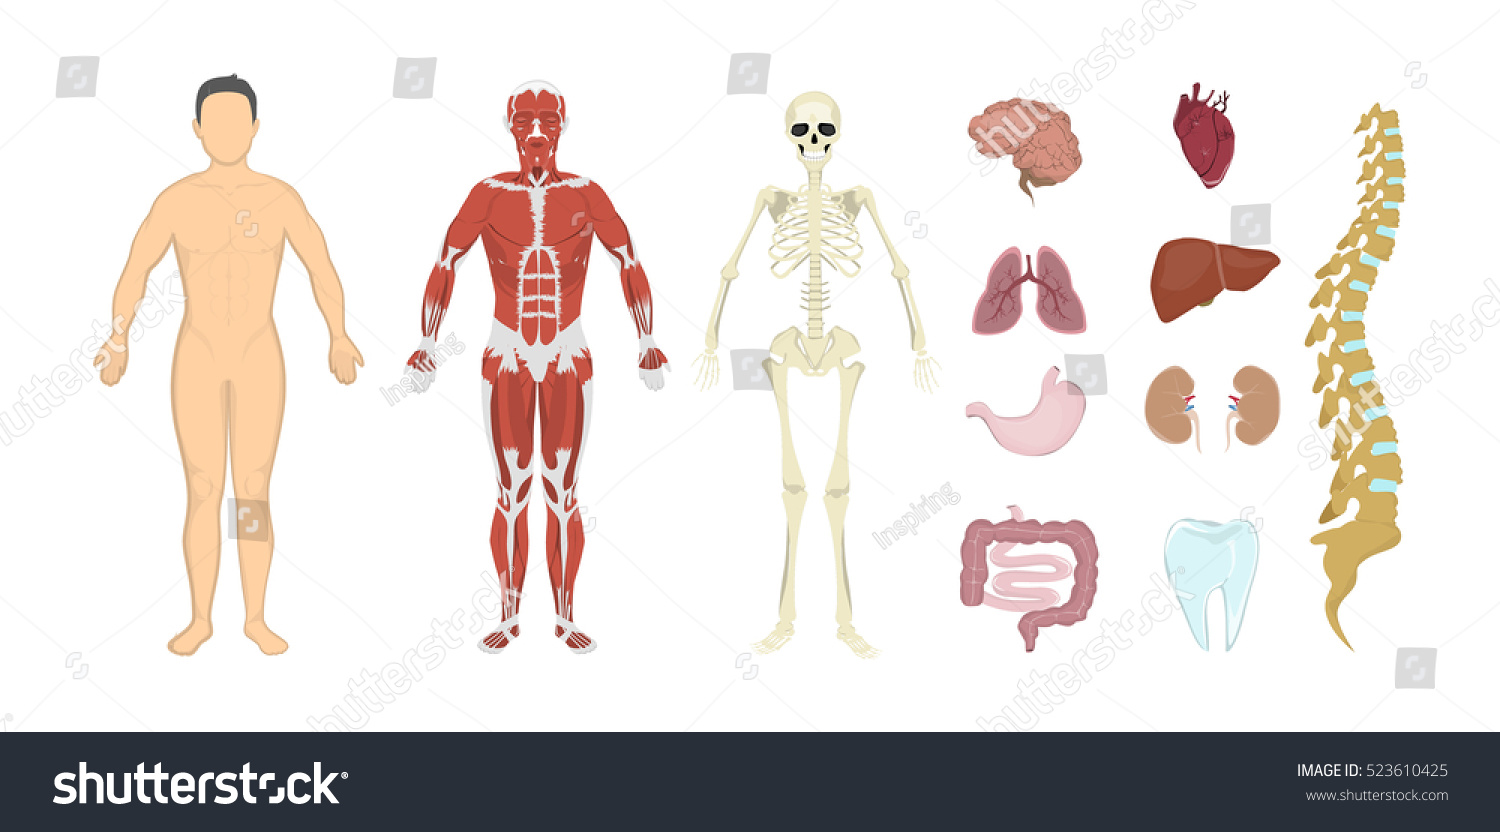 Whole Human Lymphatic System